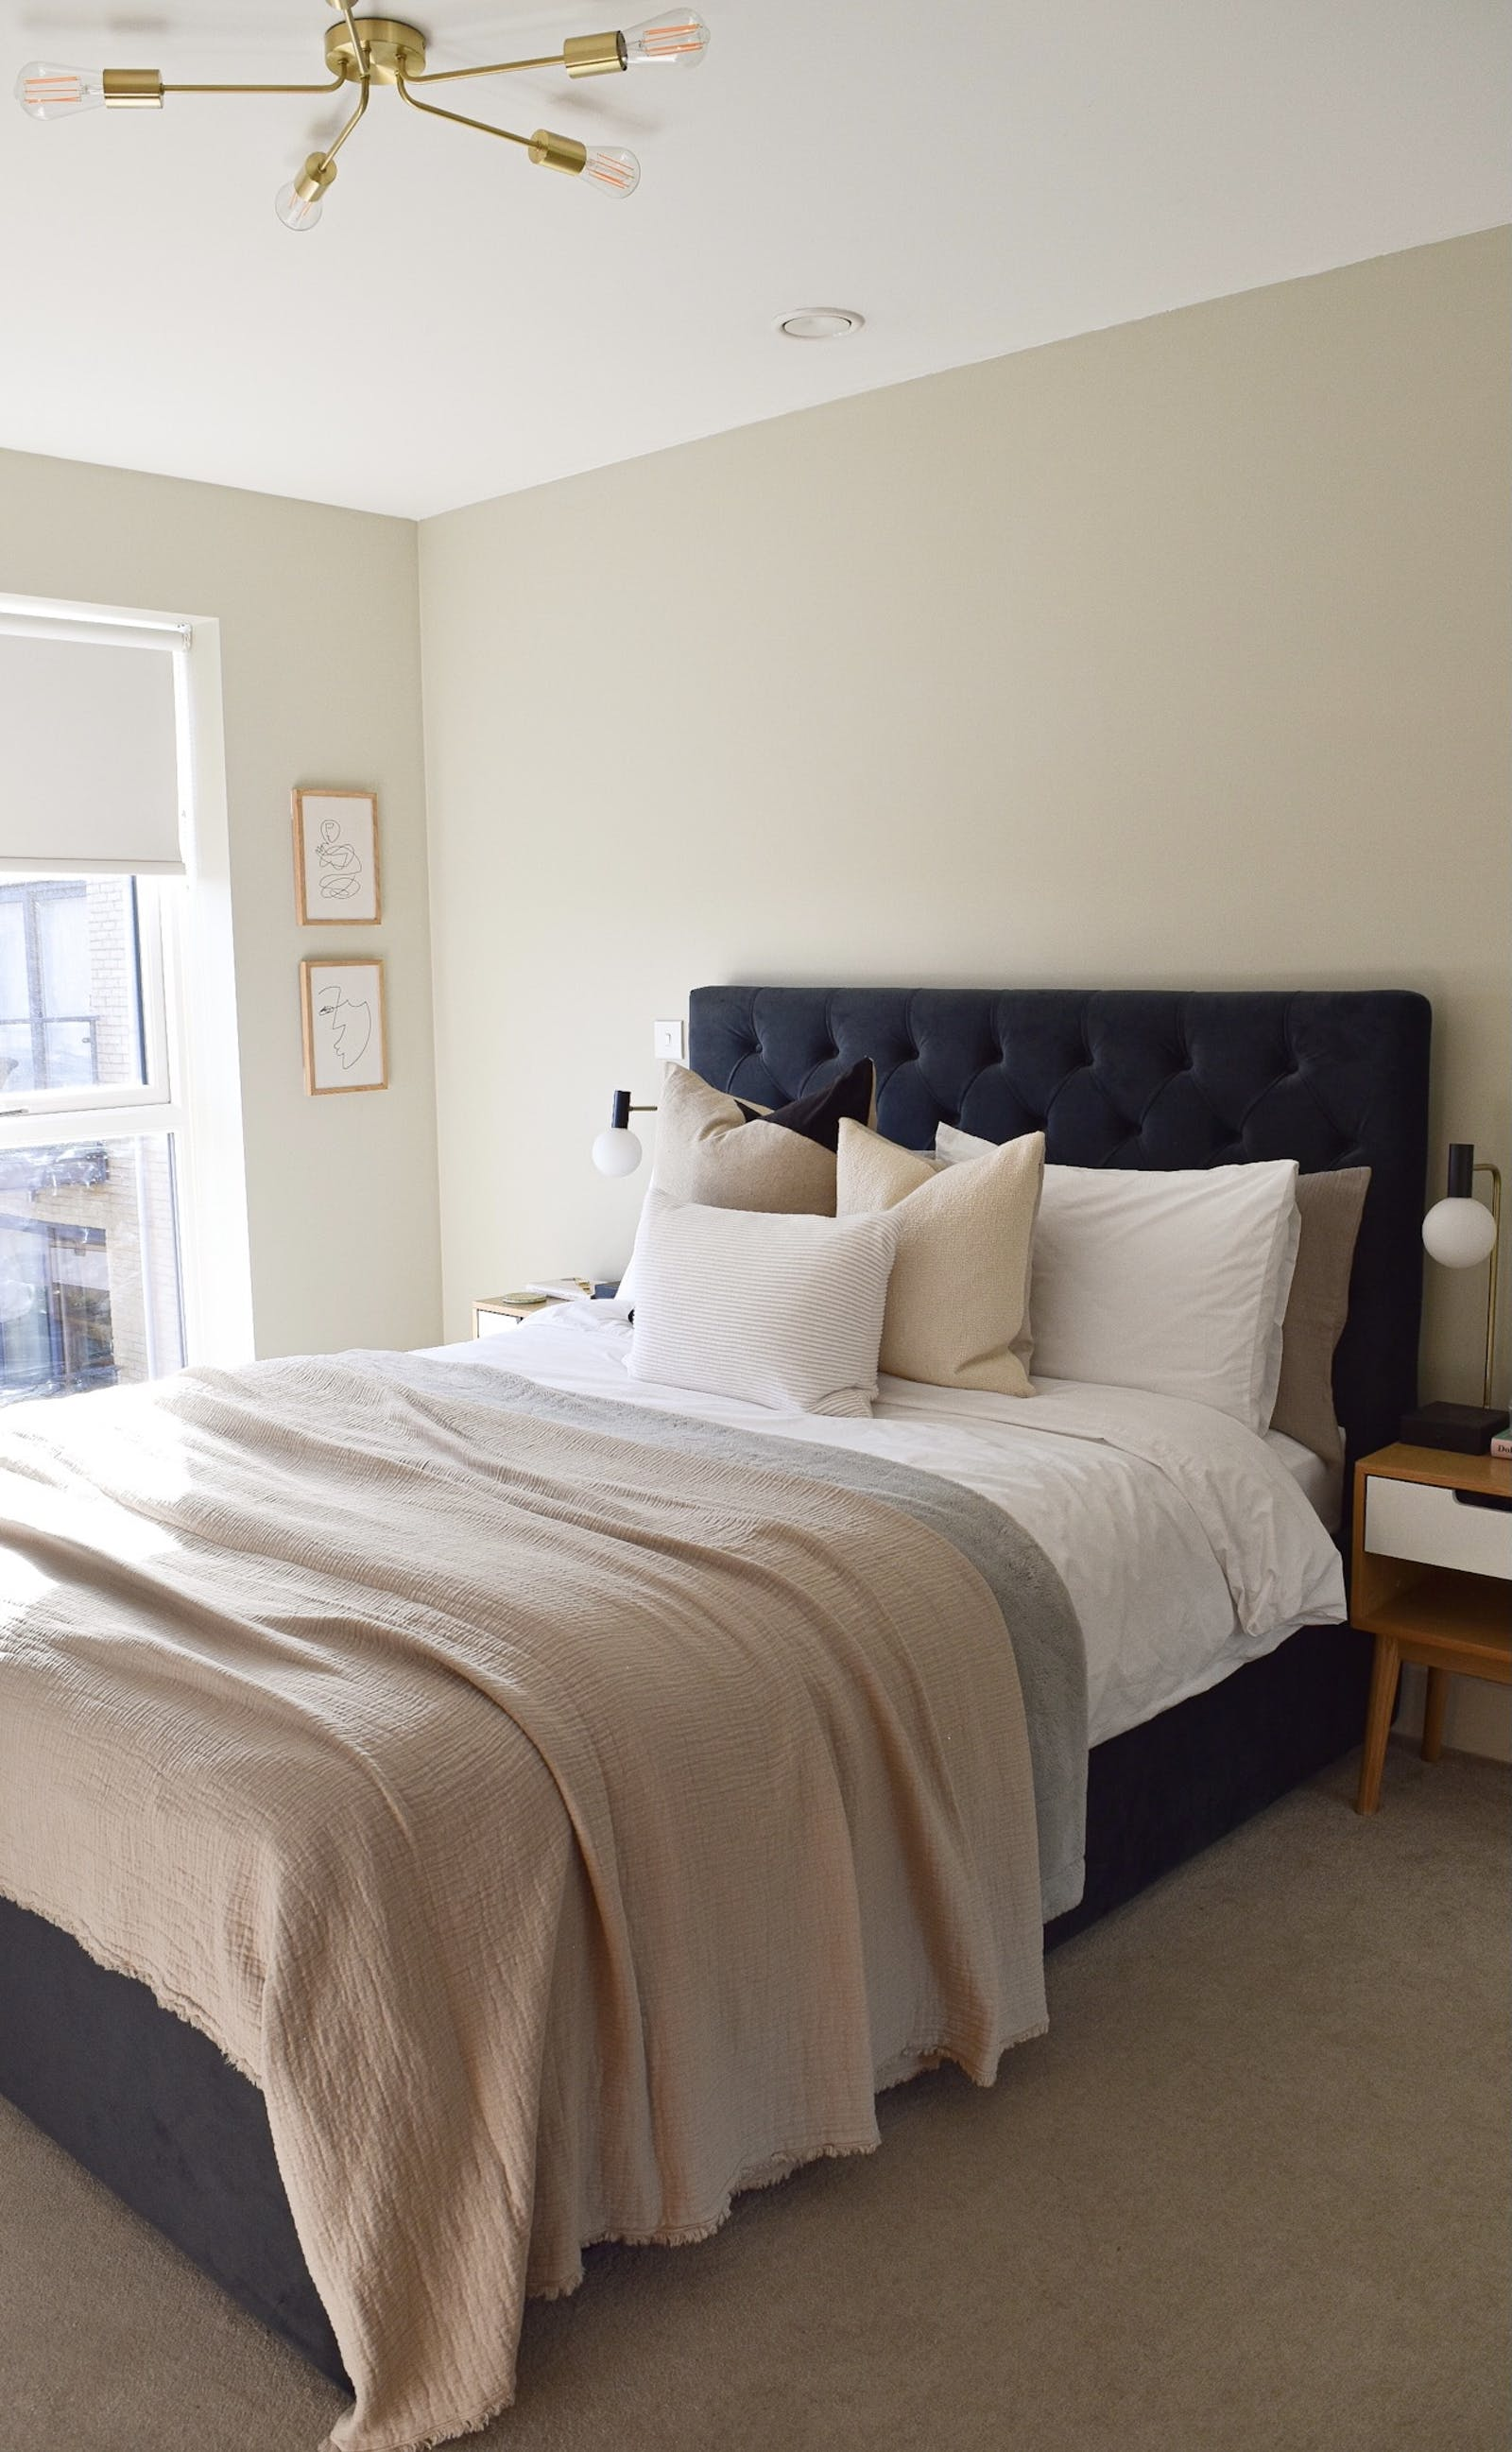 Bedroom painted in Greige 02 with a neutral soft furnishings